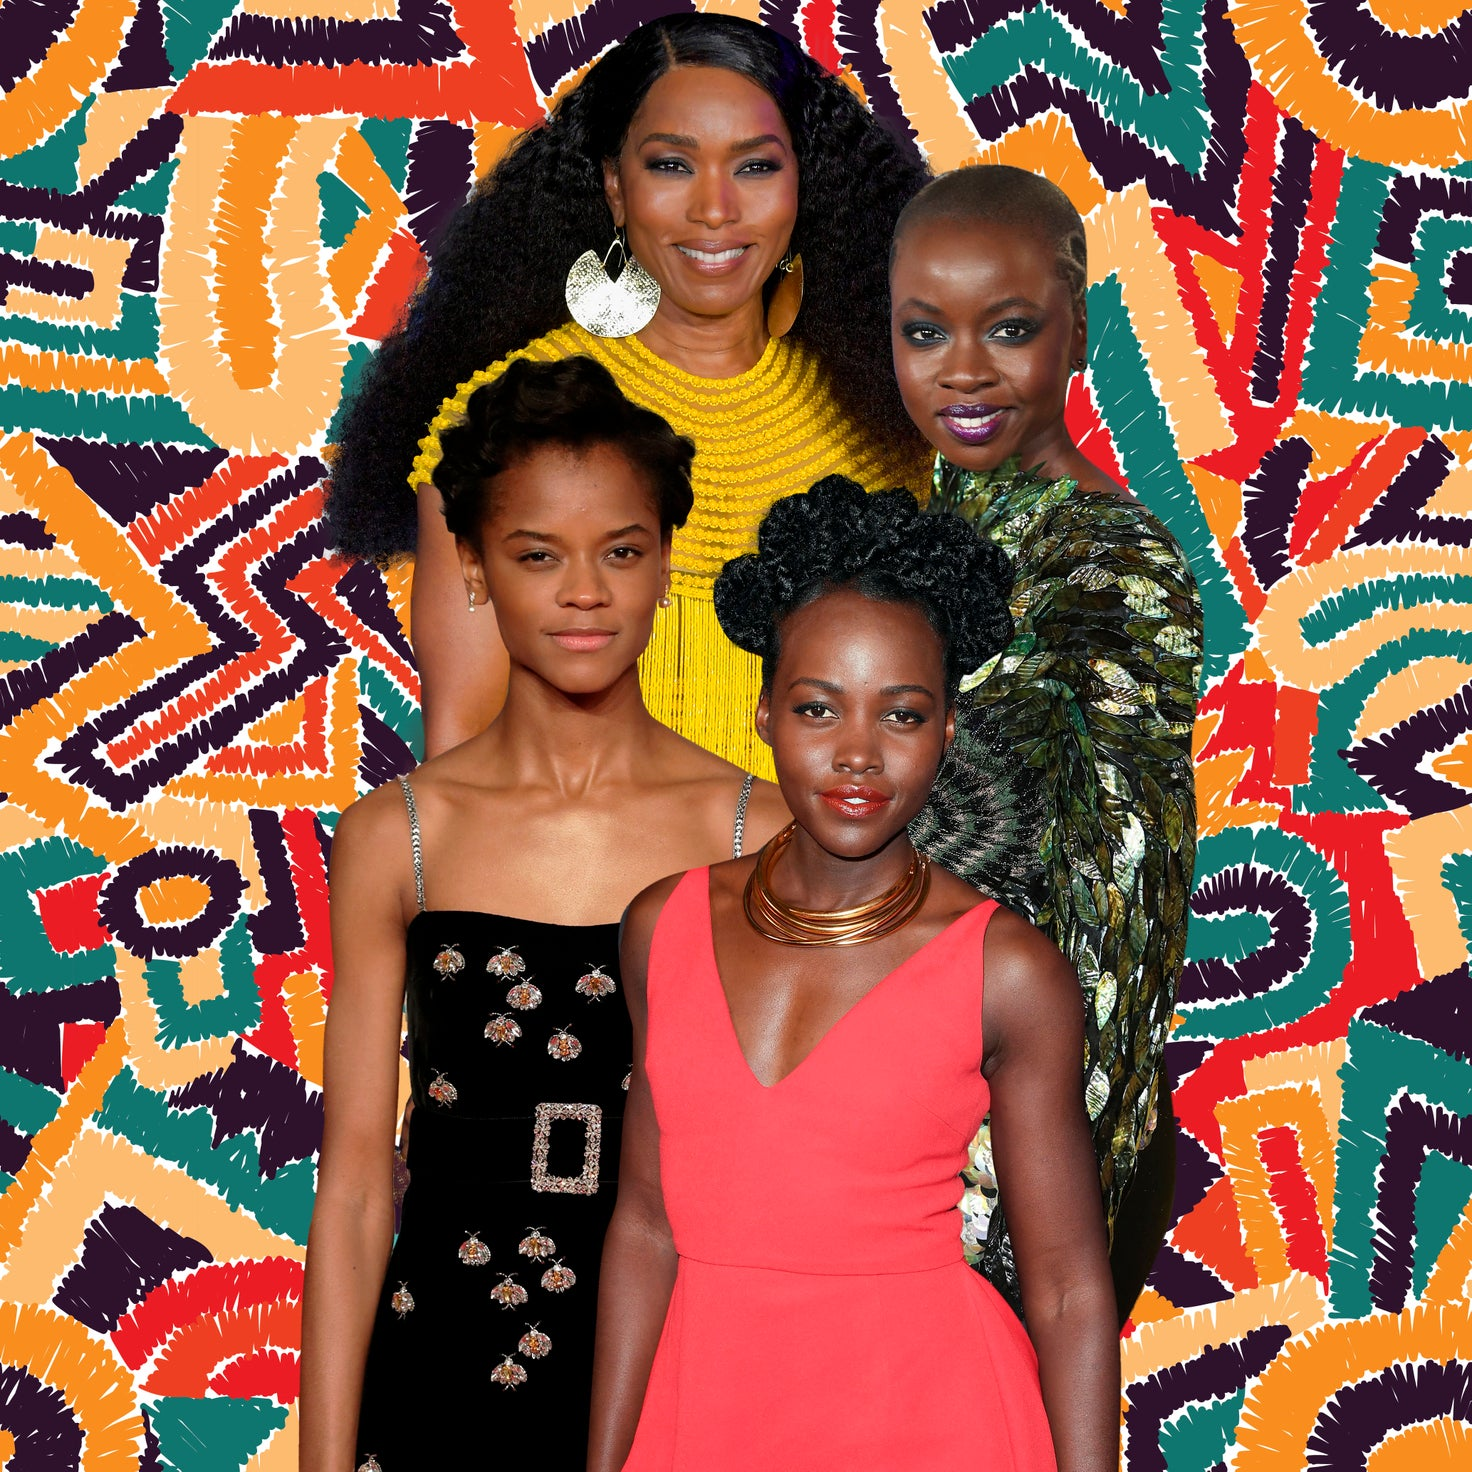 The Best Part Of 'Black Panther?' The Black Women